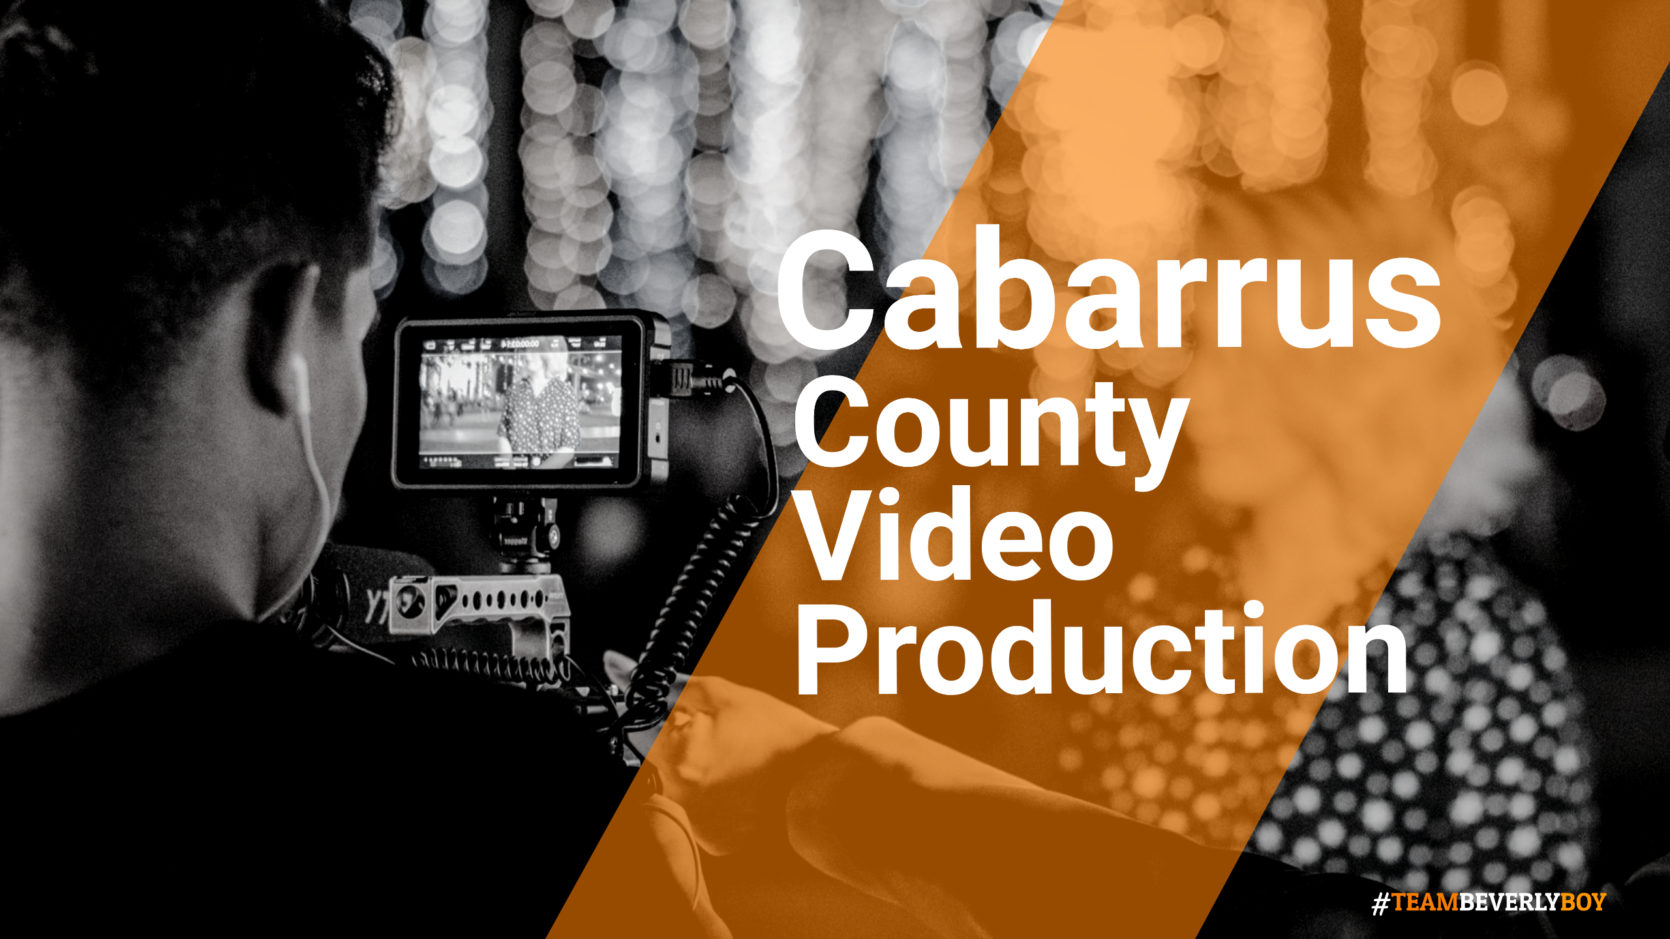 Cabarrus County Video Production